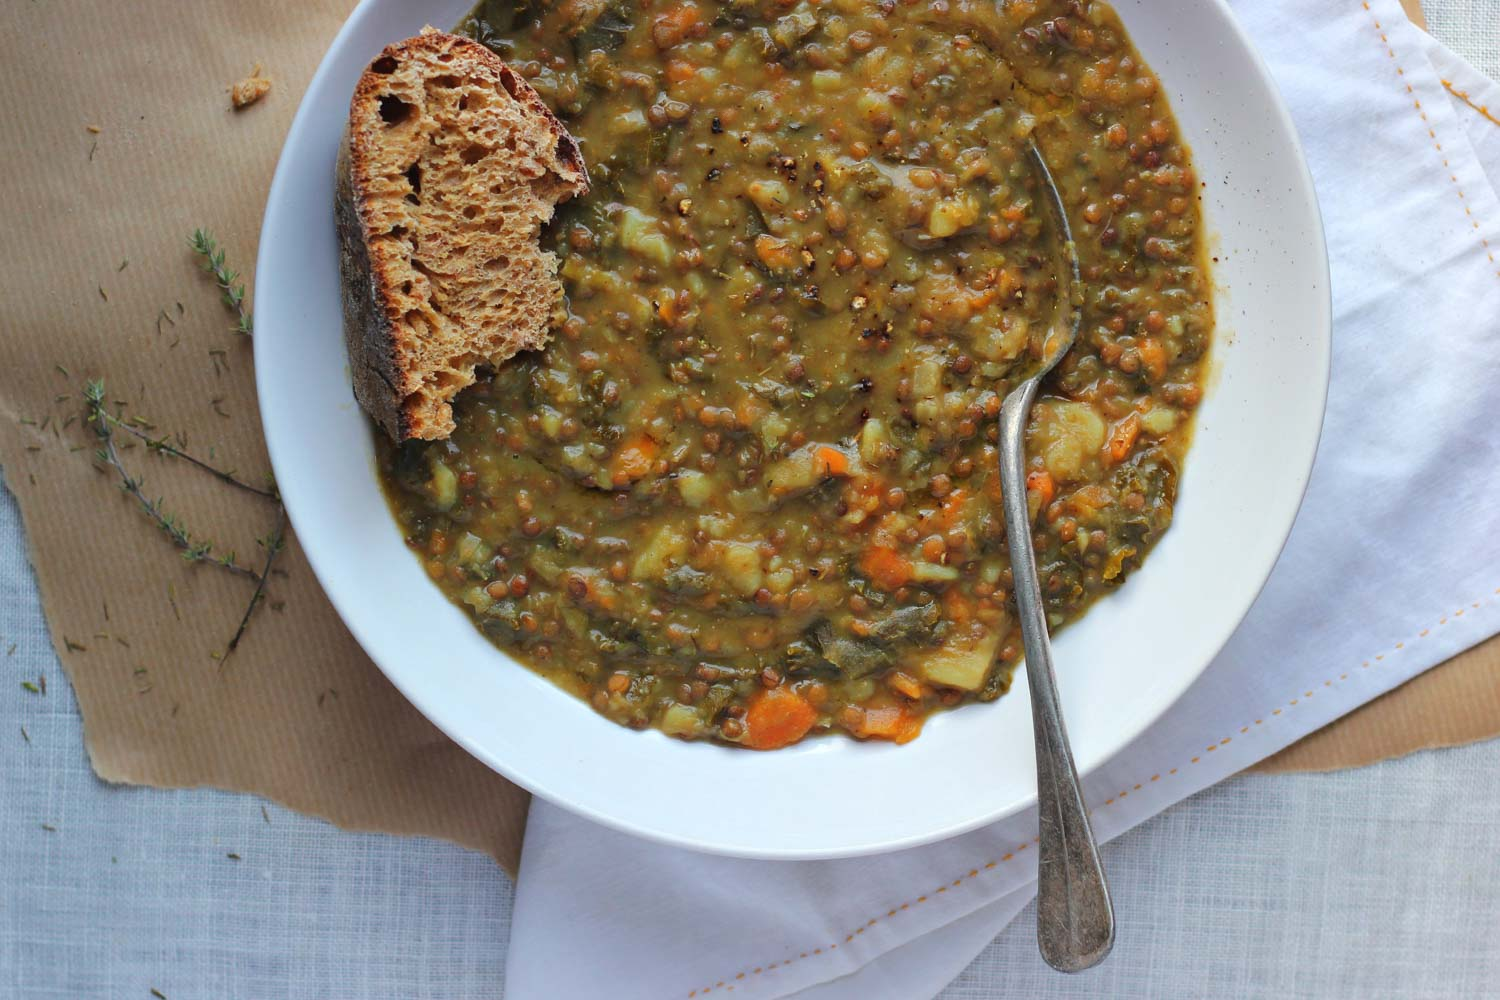 Vegan French Market Vegetable and Lentil Stew